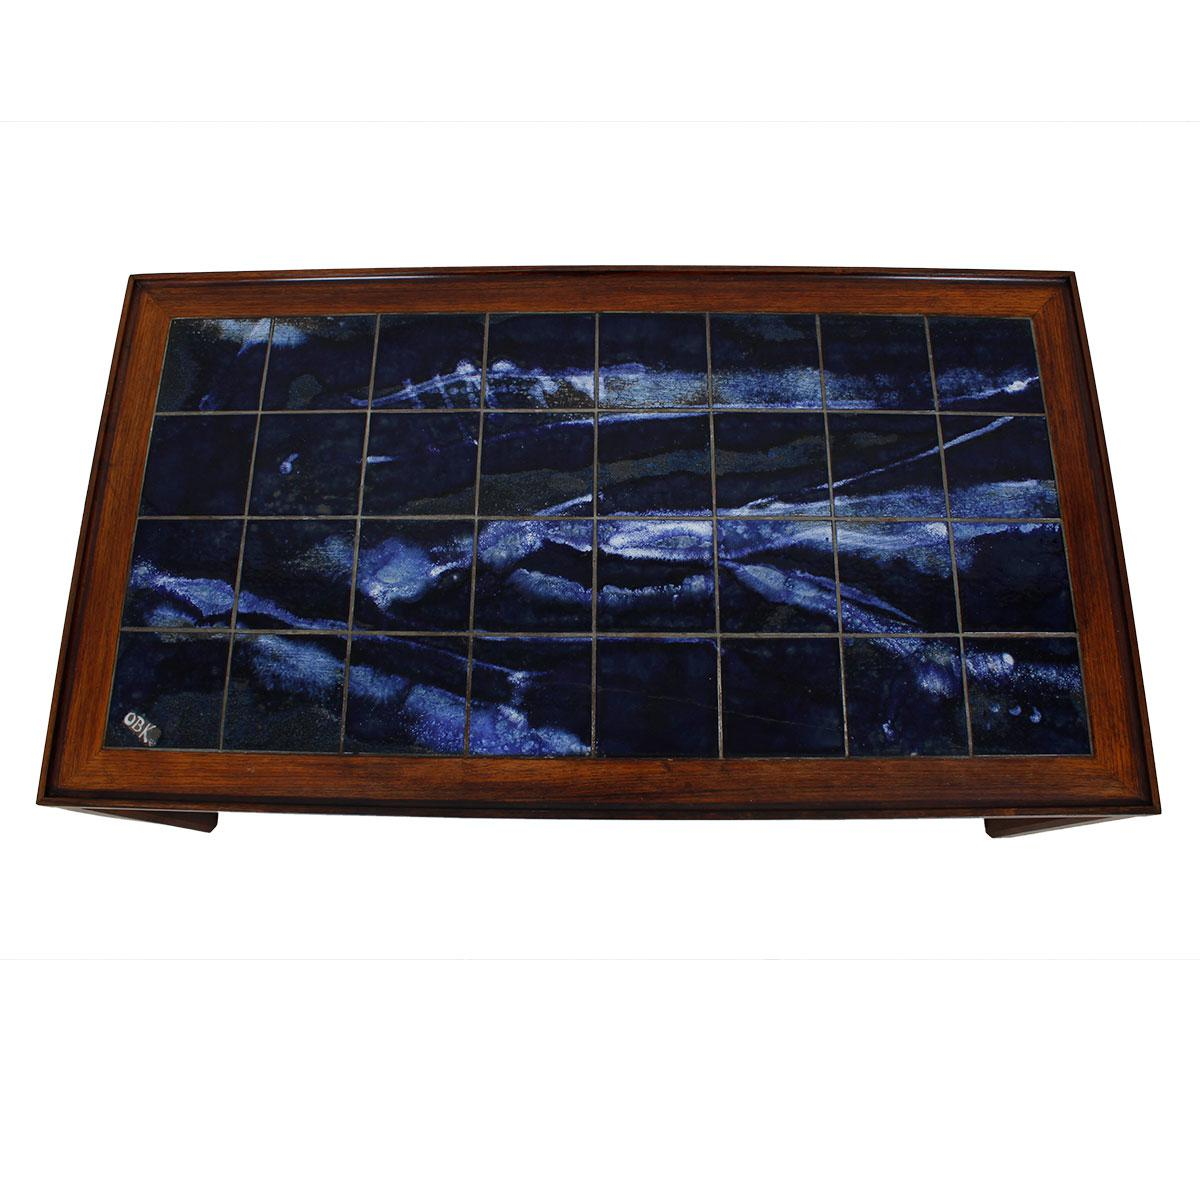 Large Danish Modern Coffee Table in Rosewood with White & Blue Tile Top.